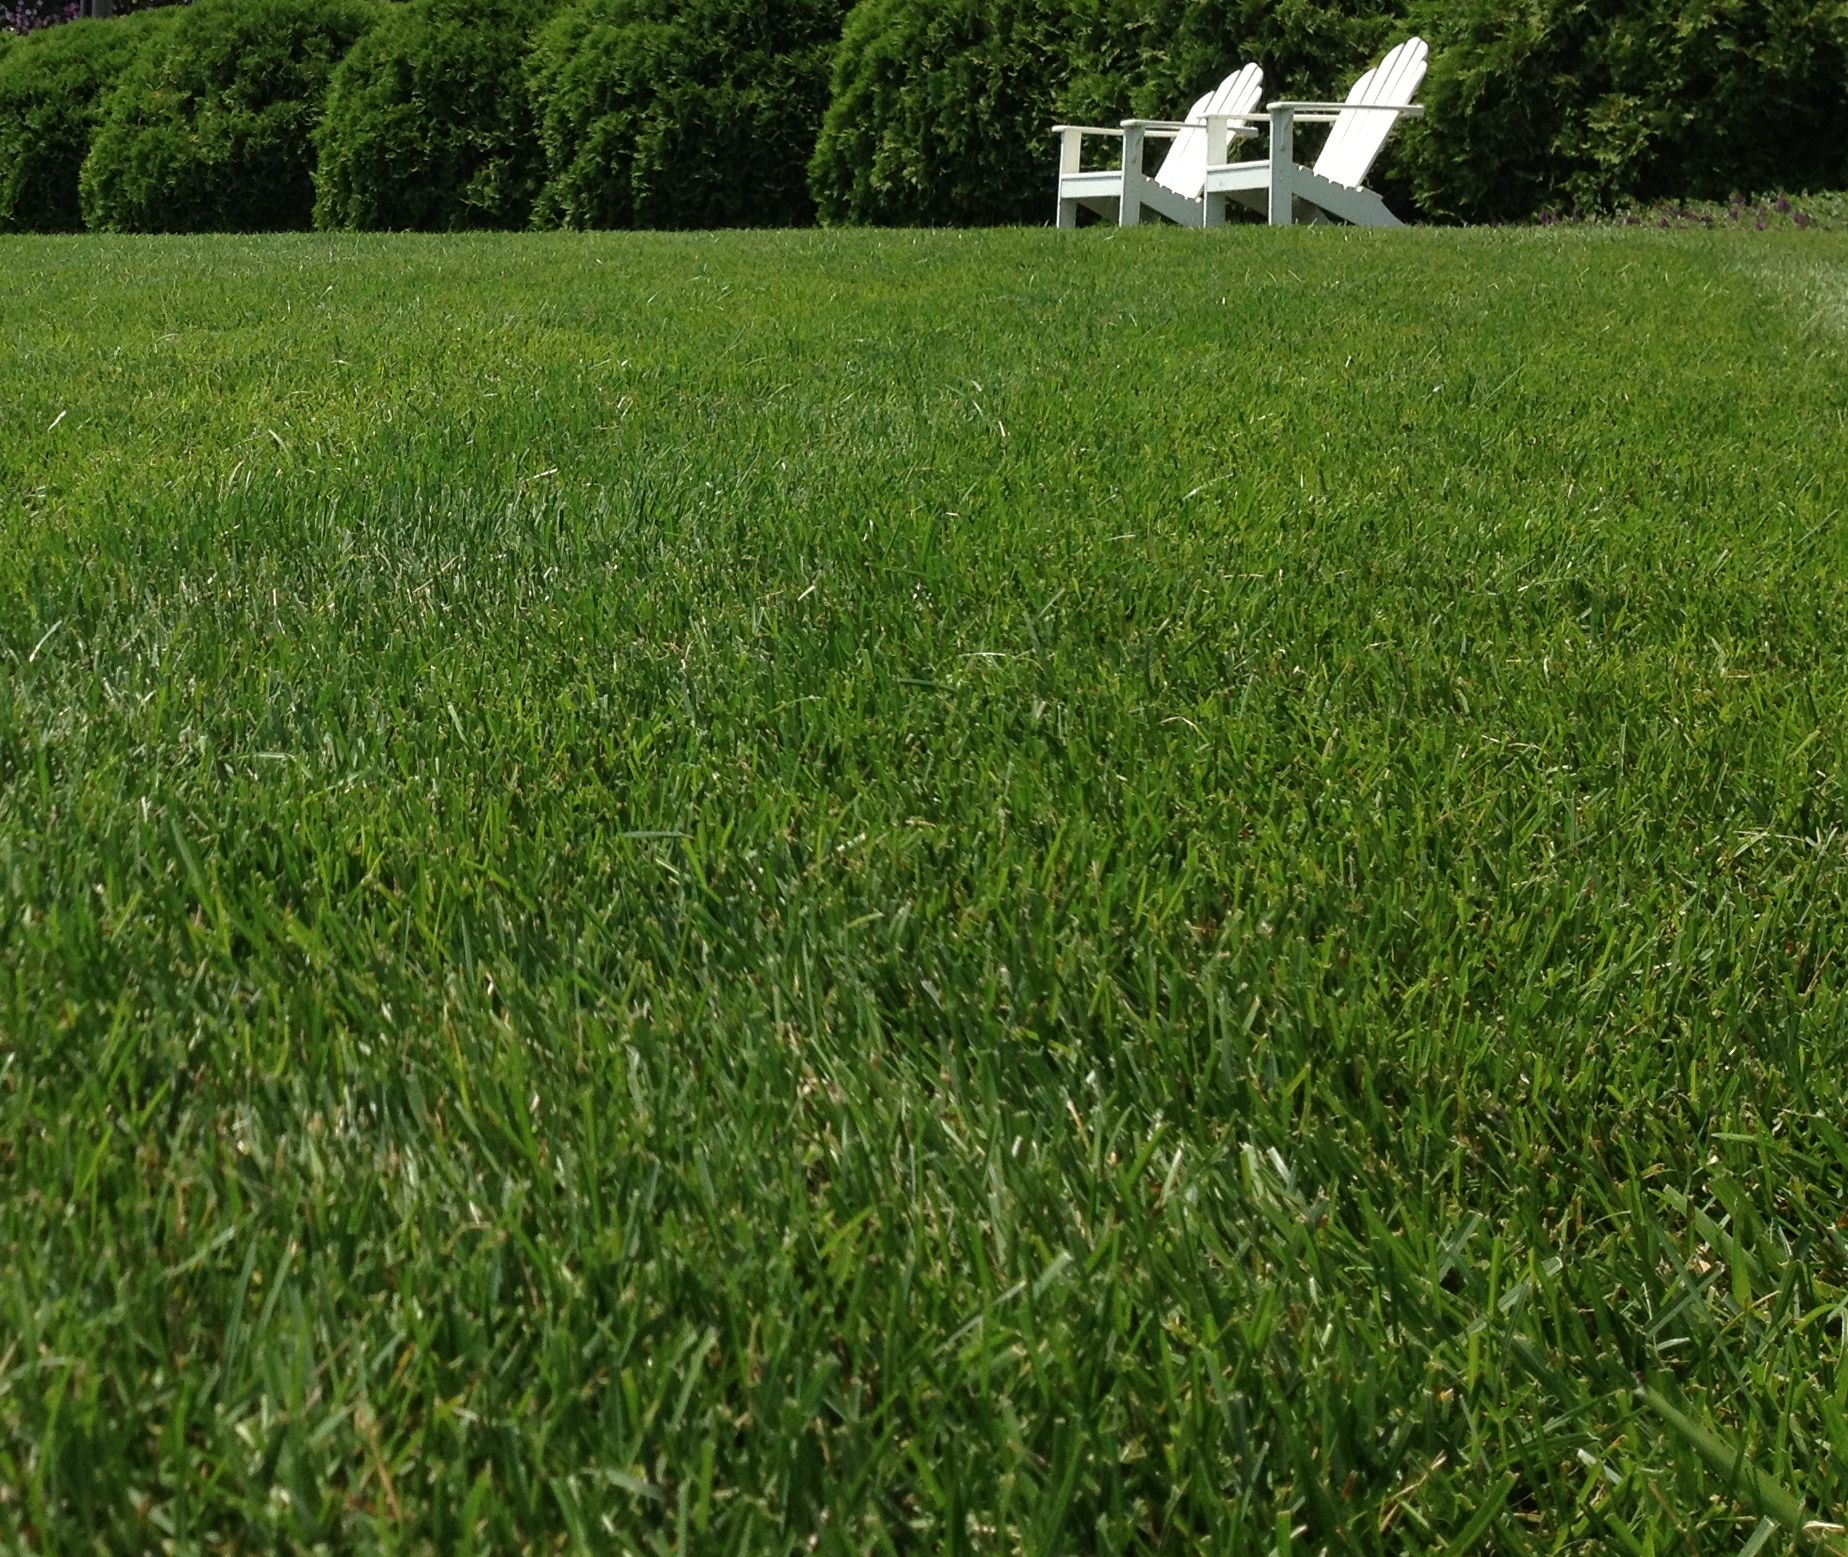 Lawn Care and Grass Seed at Flowerland